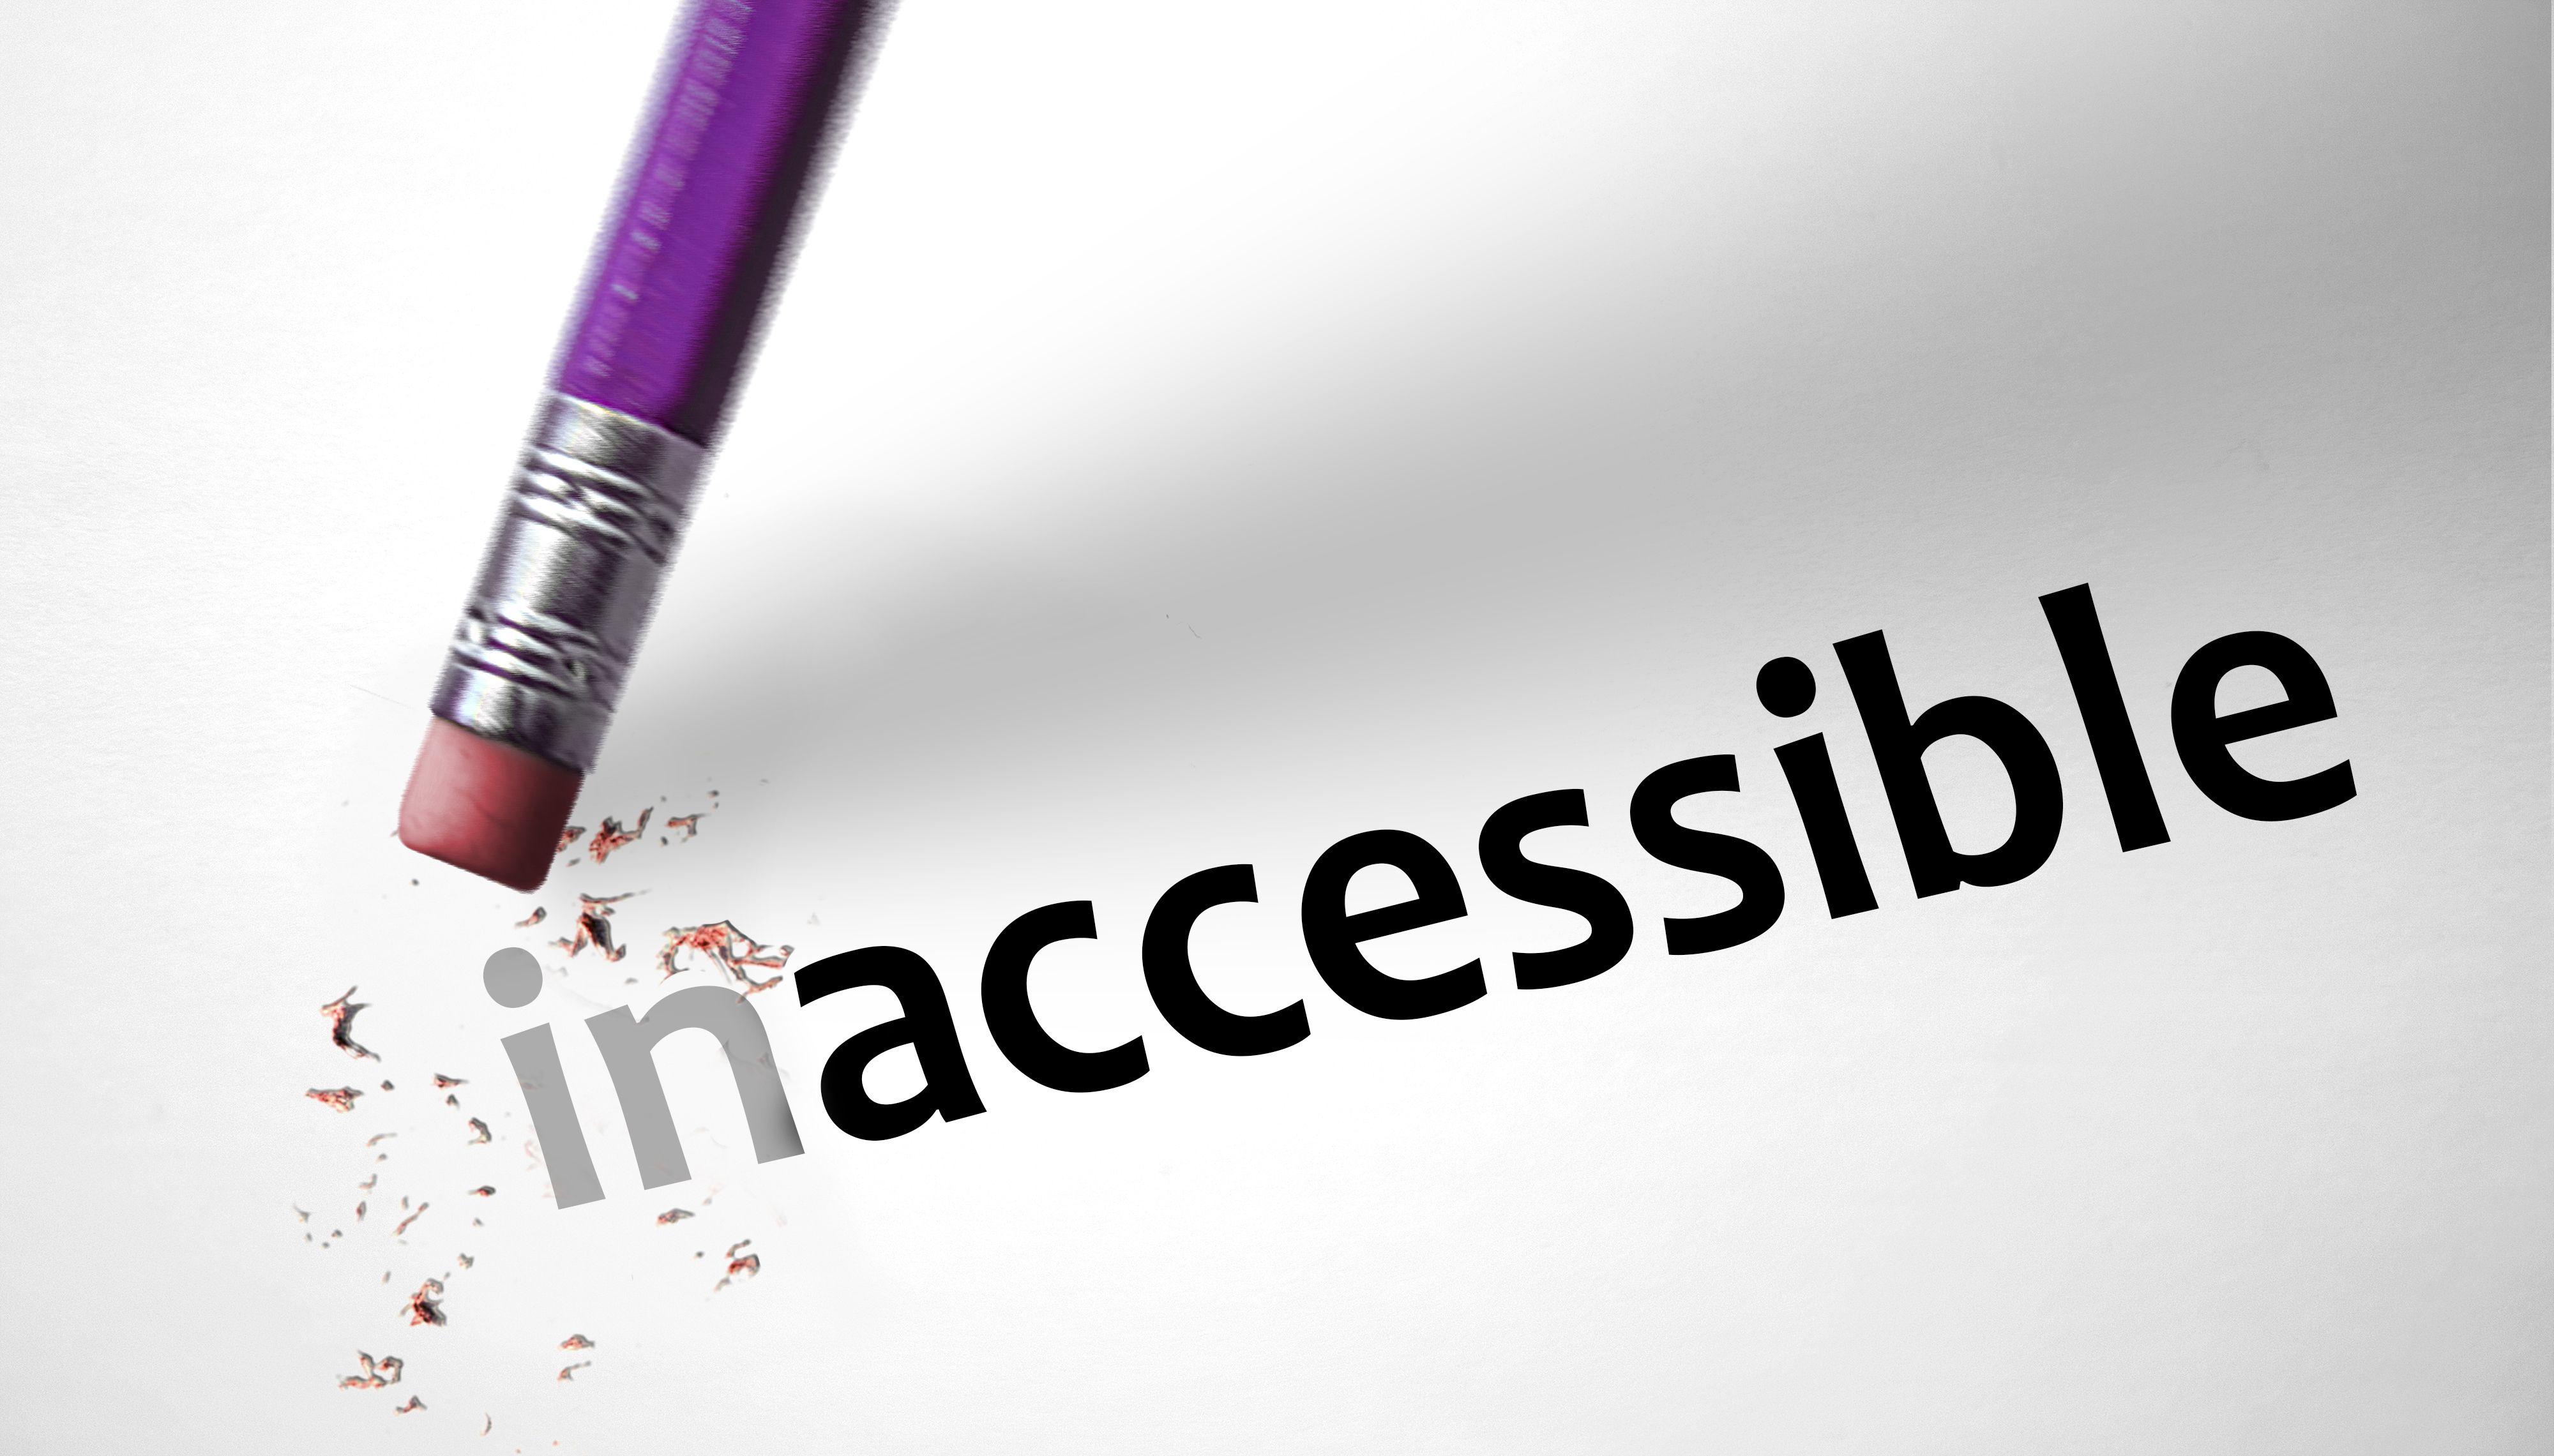 image of pencil erasing the in part of the word inaccessible